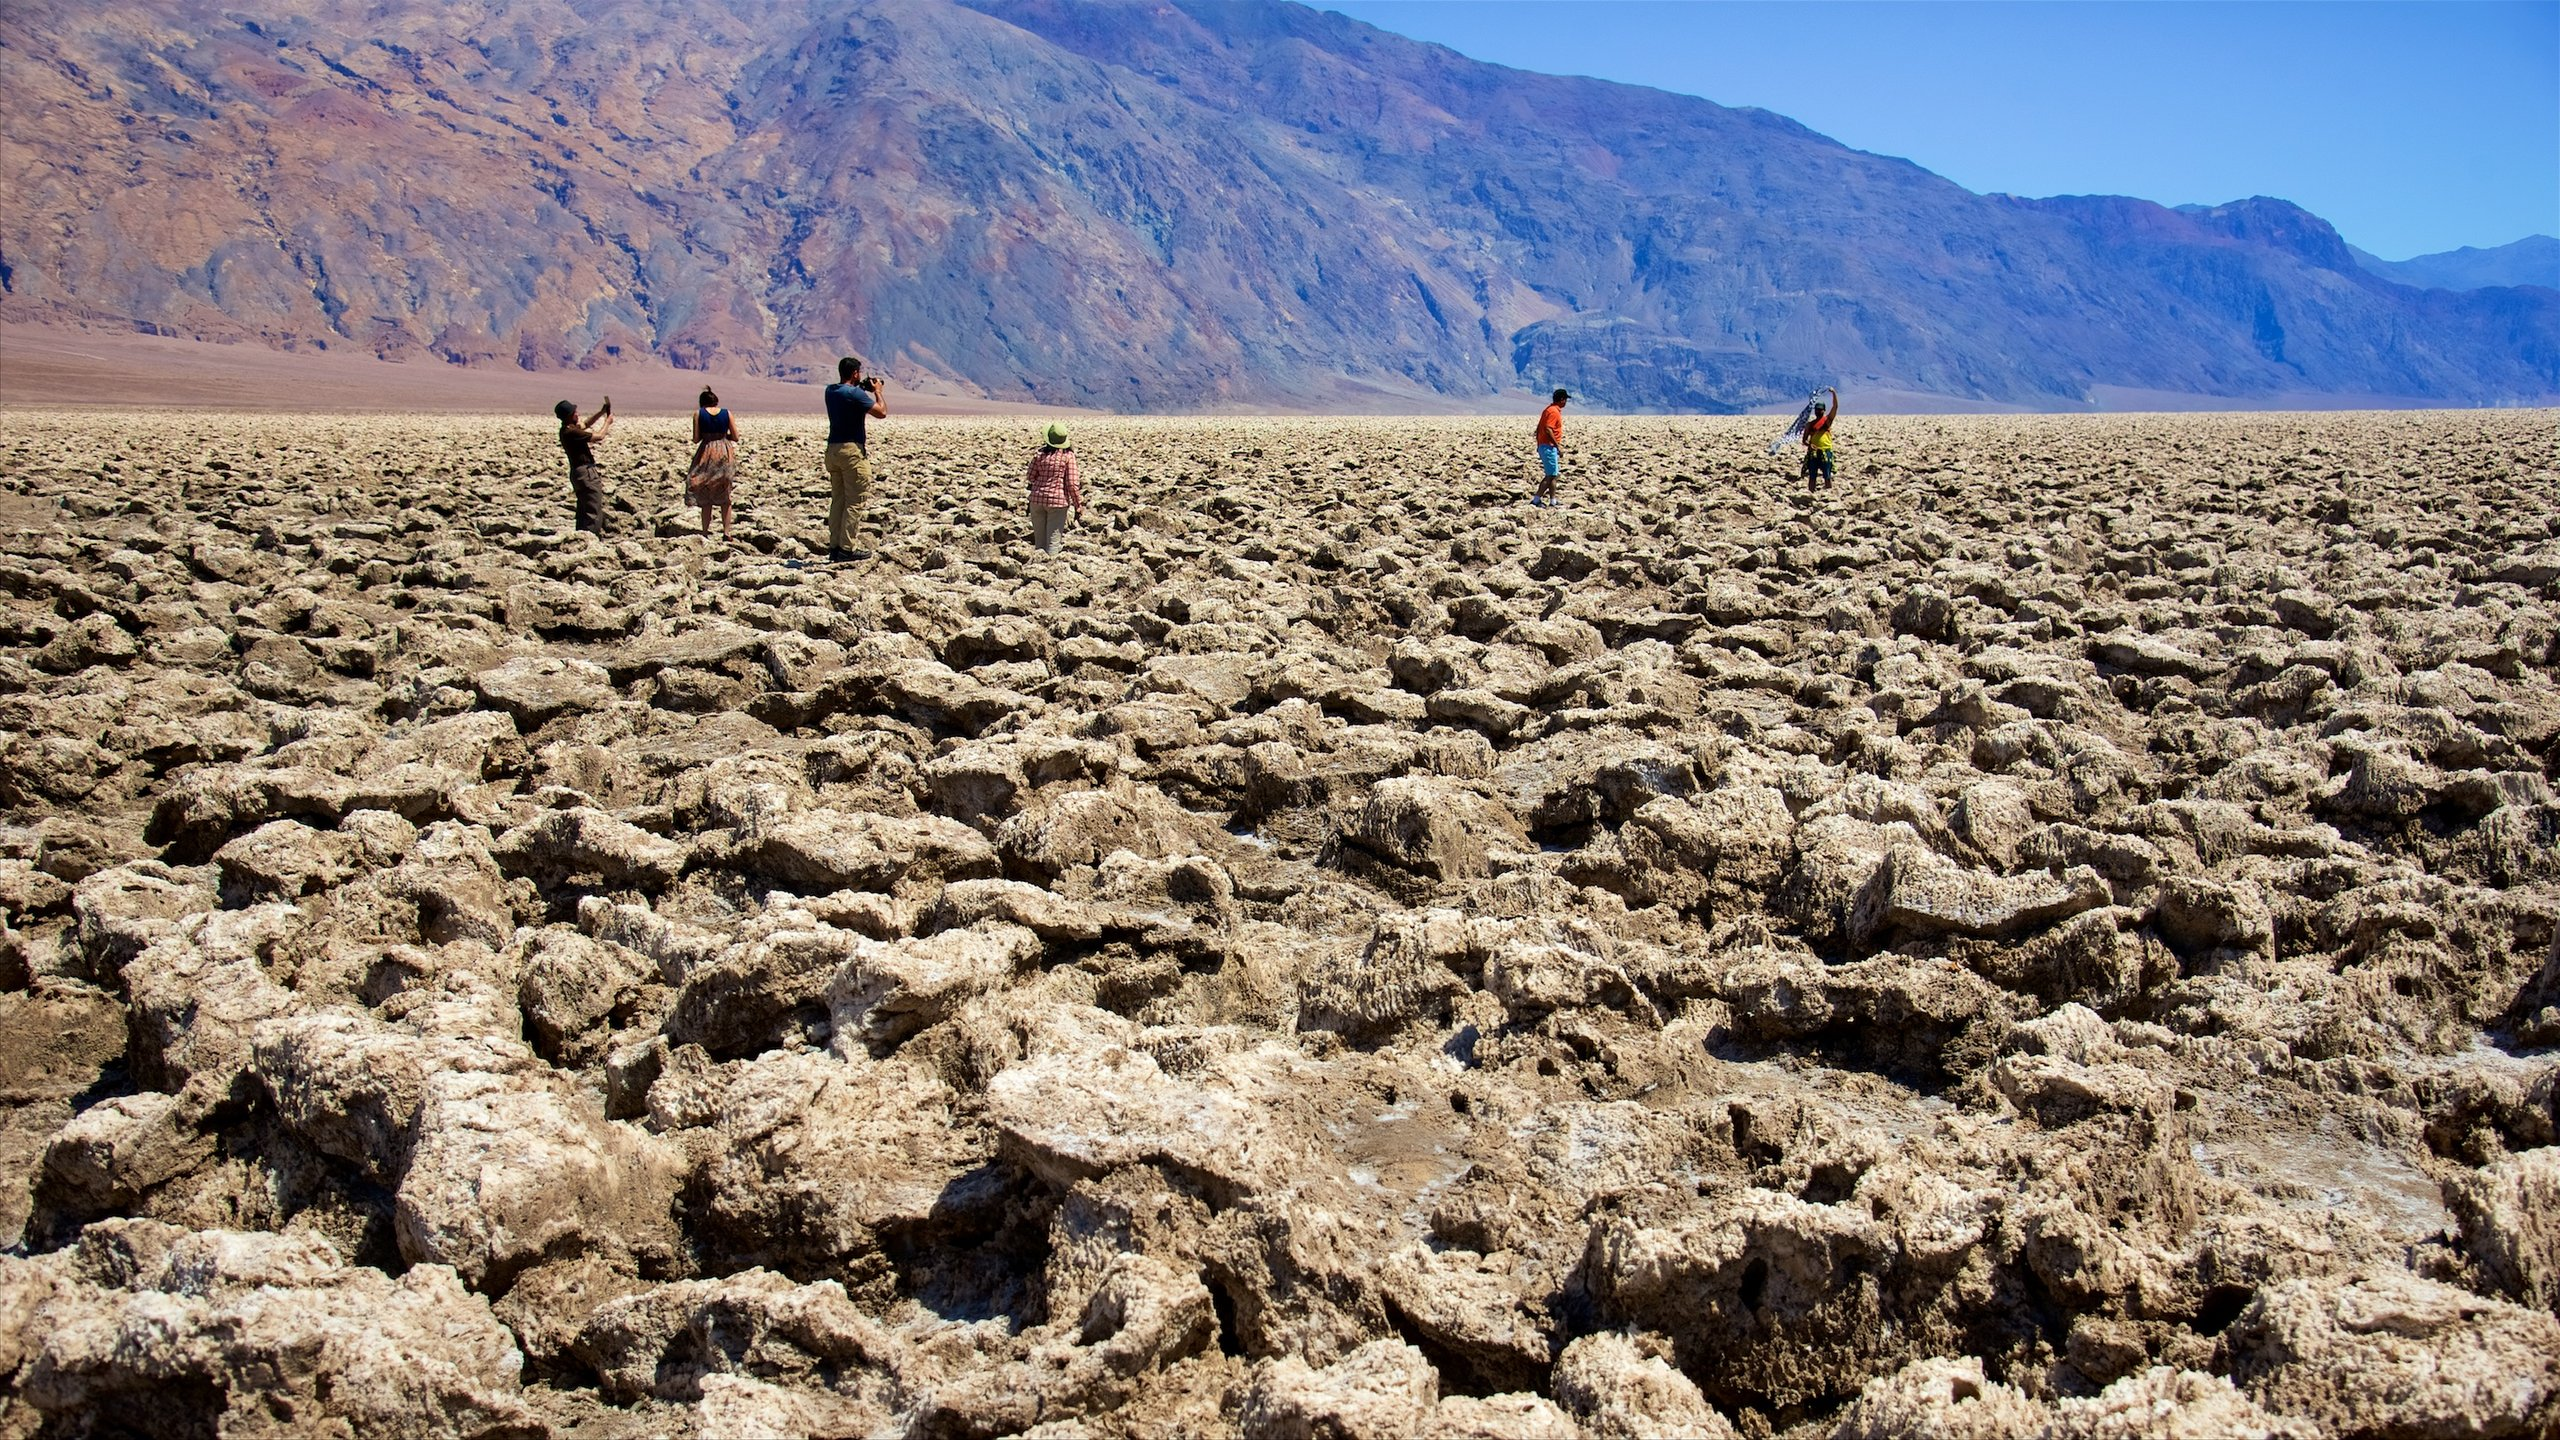 Clamber over the serrated surface of this enormous saltpan in Death Valley, where huge halite salt crystals have sculpted the bottom of a former lake.